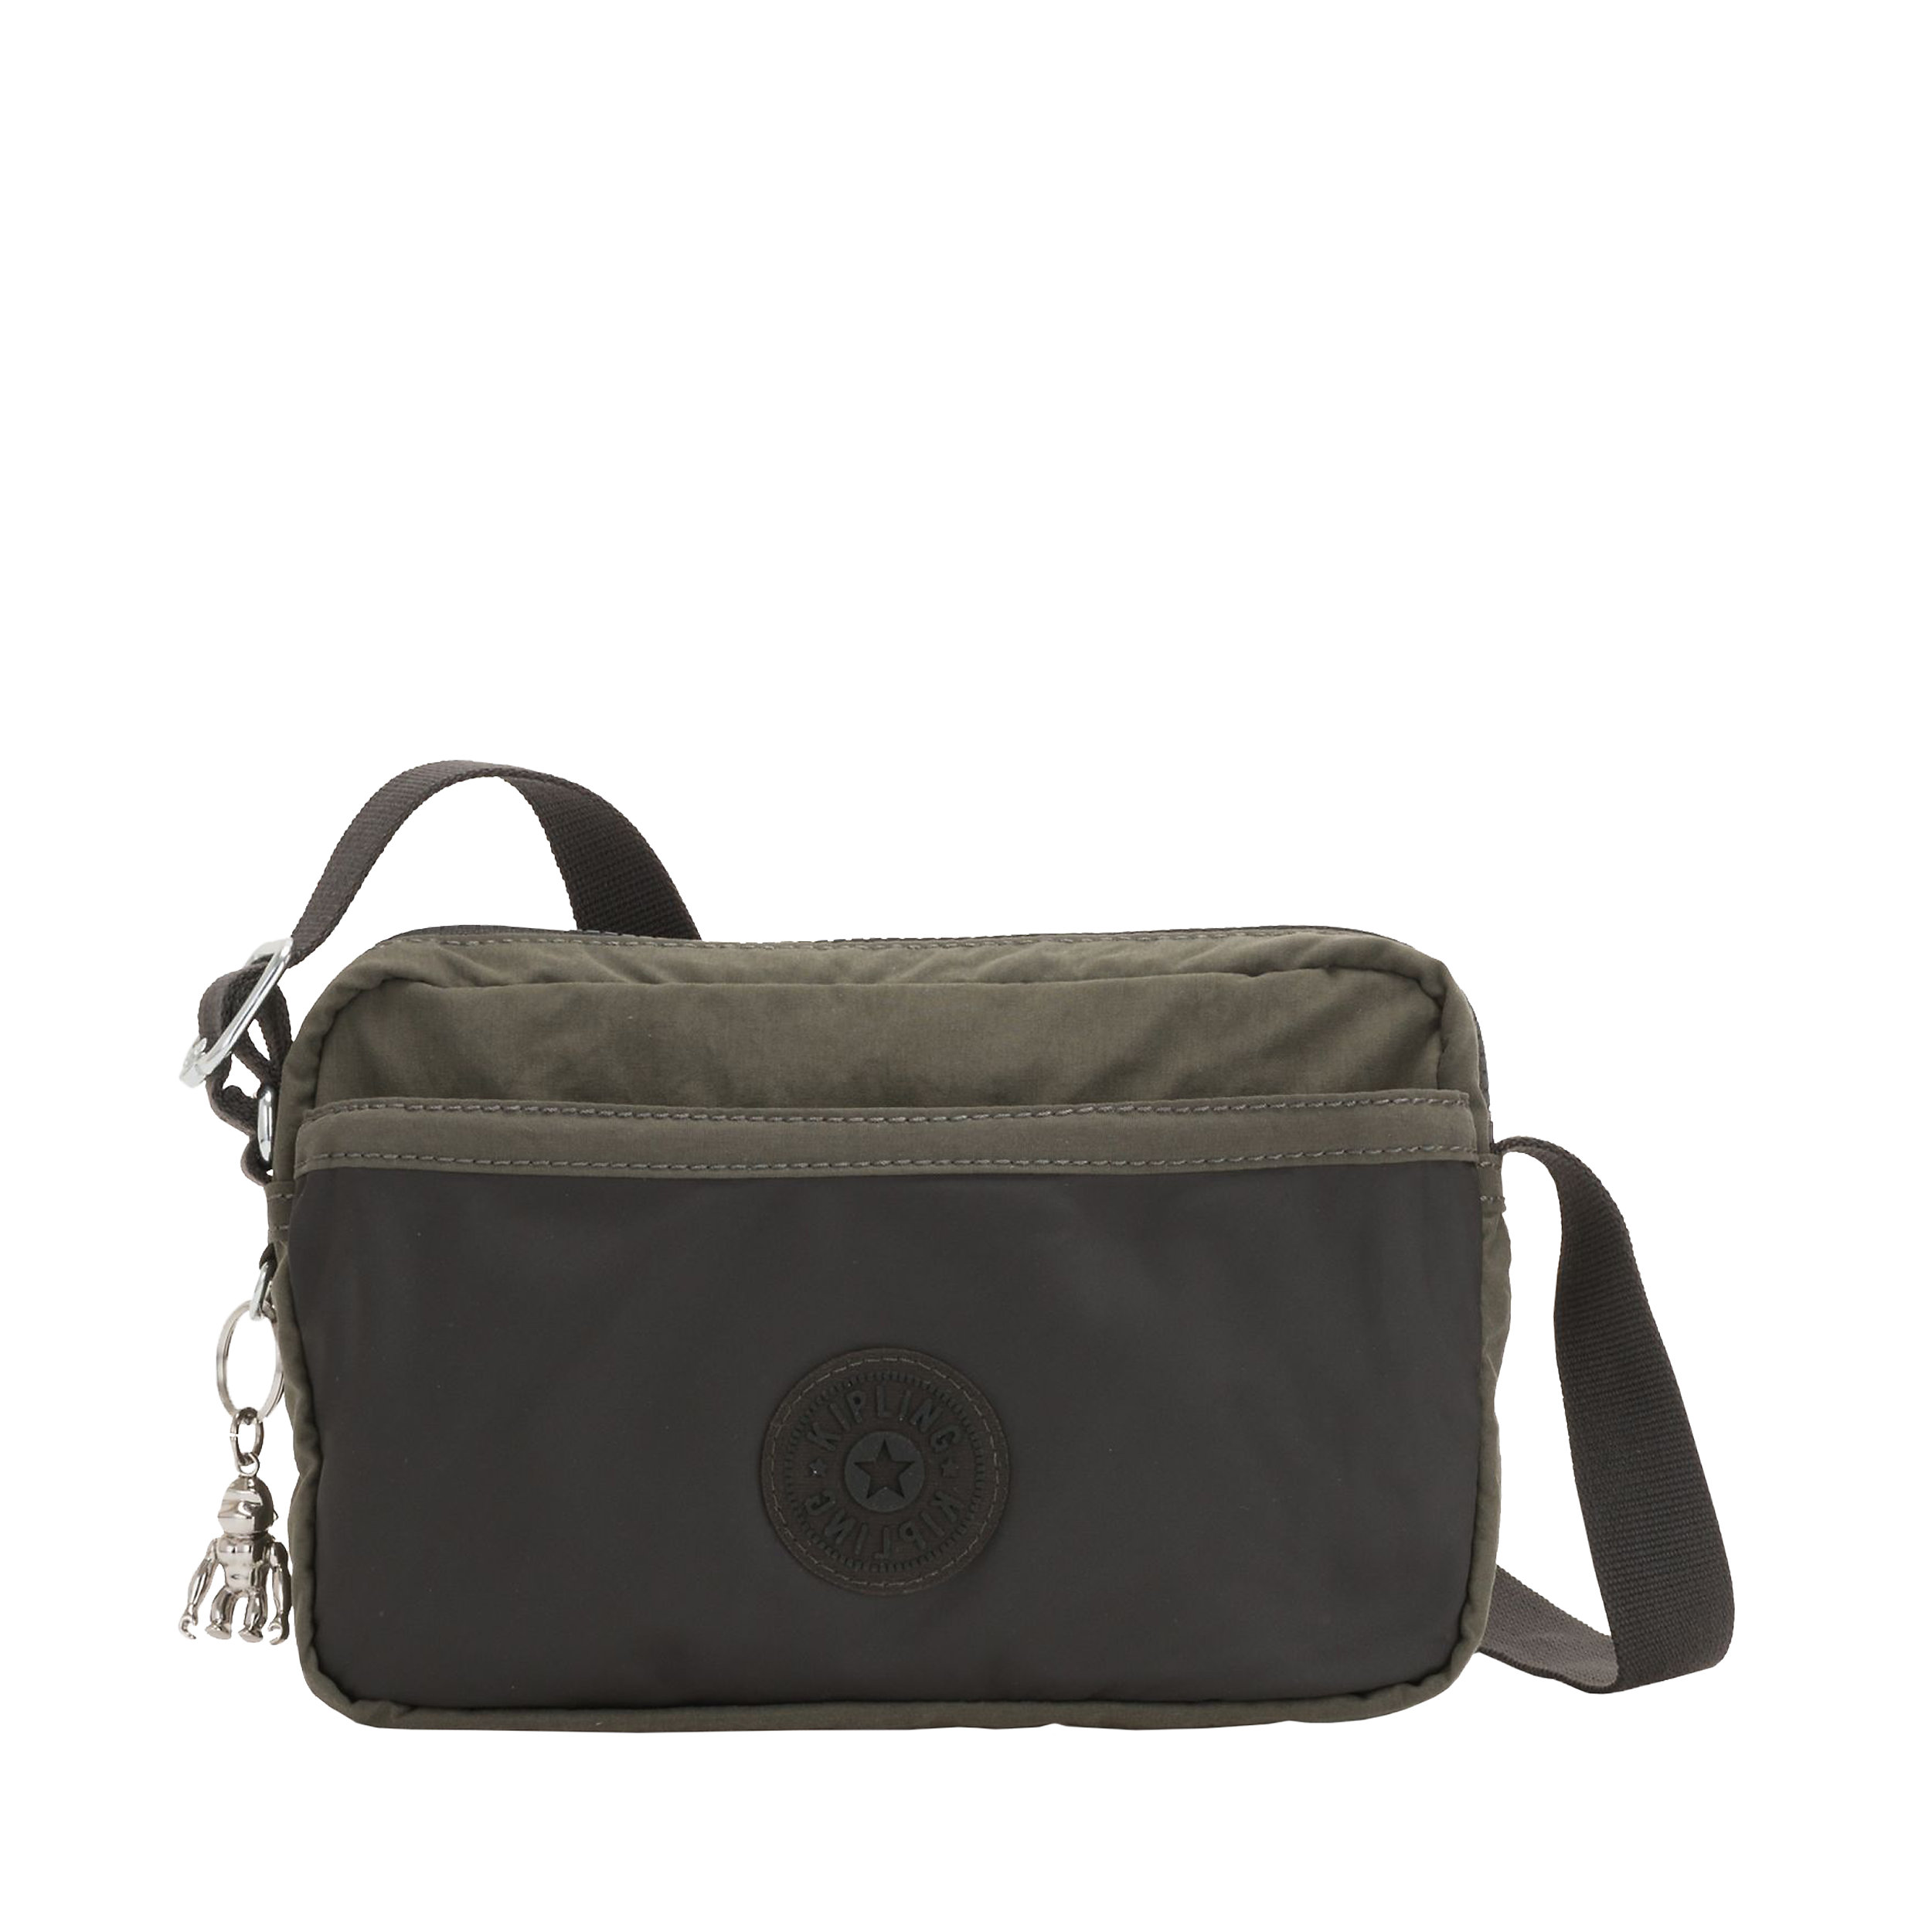 Crossbody Bag Ursina S Inside Out 4 Liter